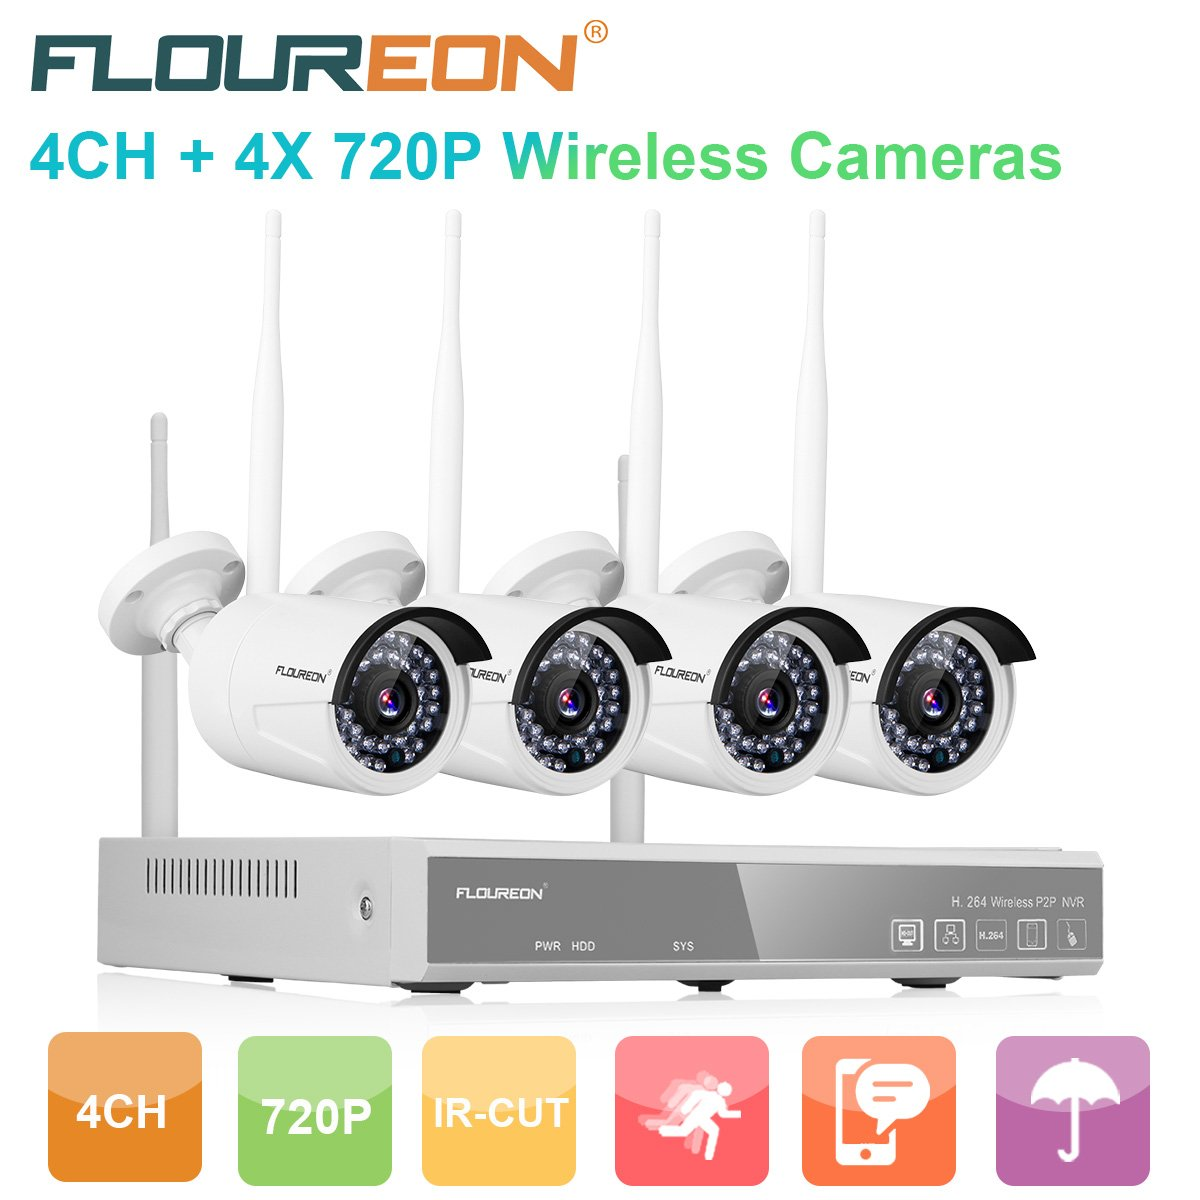 FLOUREON Wireless CCTV Security House Camera System 4CH NVR Kits 1080P + 4 Pack 720P 1.0MP HD Wireless IP Network WiFi Camera Night Vision Remote Access Motion Detection(4CH+ 4X 720P Camera) by floureon